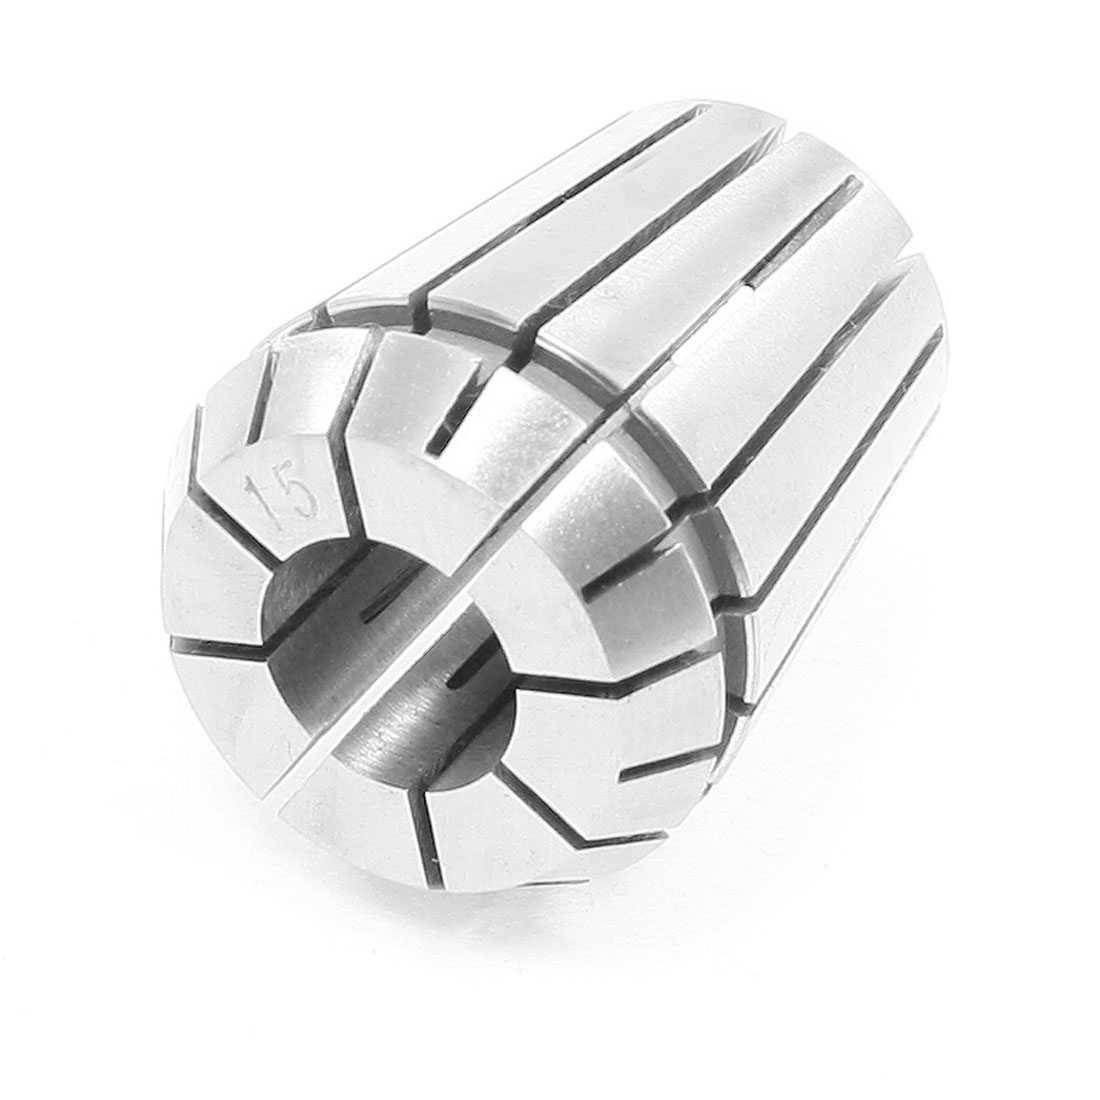 Unique Bargains Boring Machinery ER32 Type Collet Chuck Bit 15mm Clamping Diameter